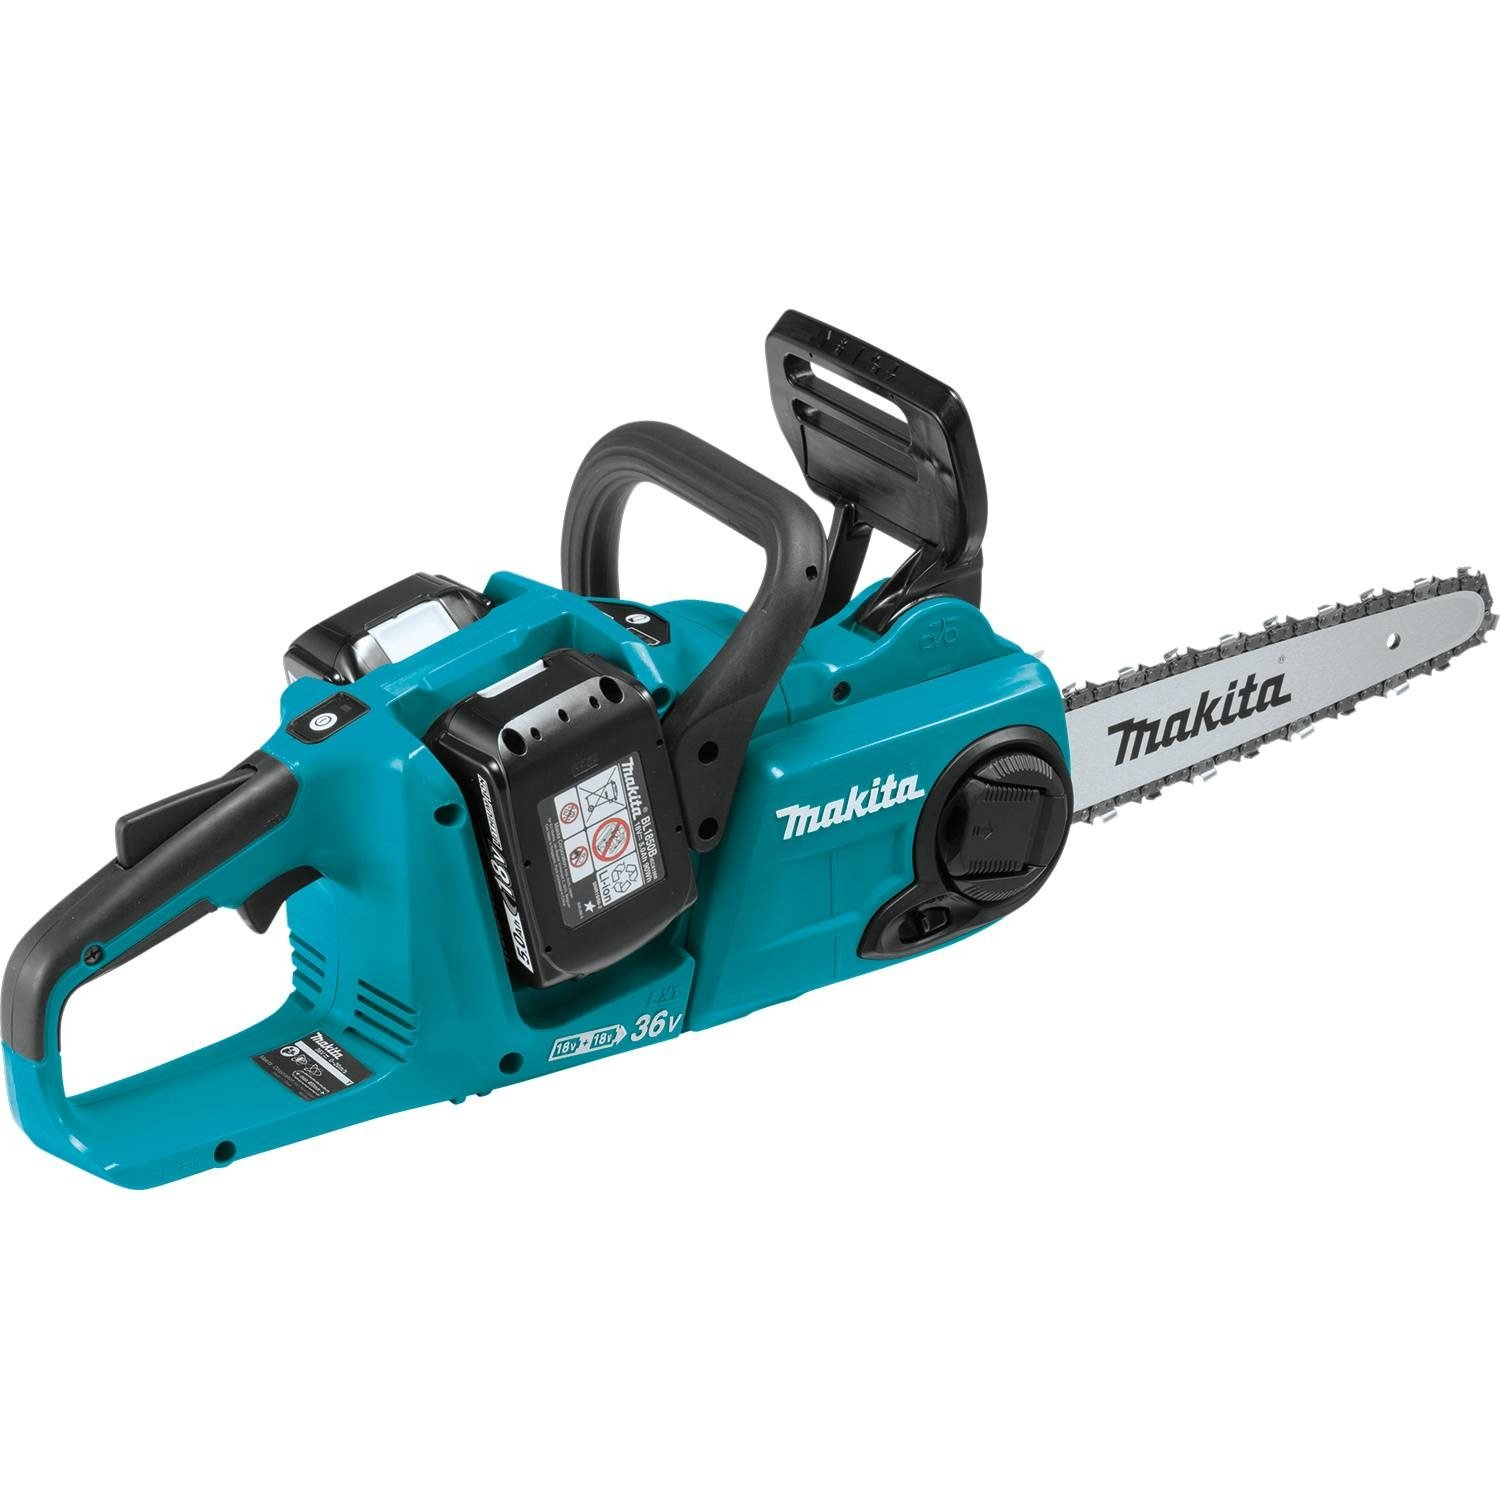 Makita Best Electric Chainsaw